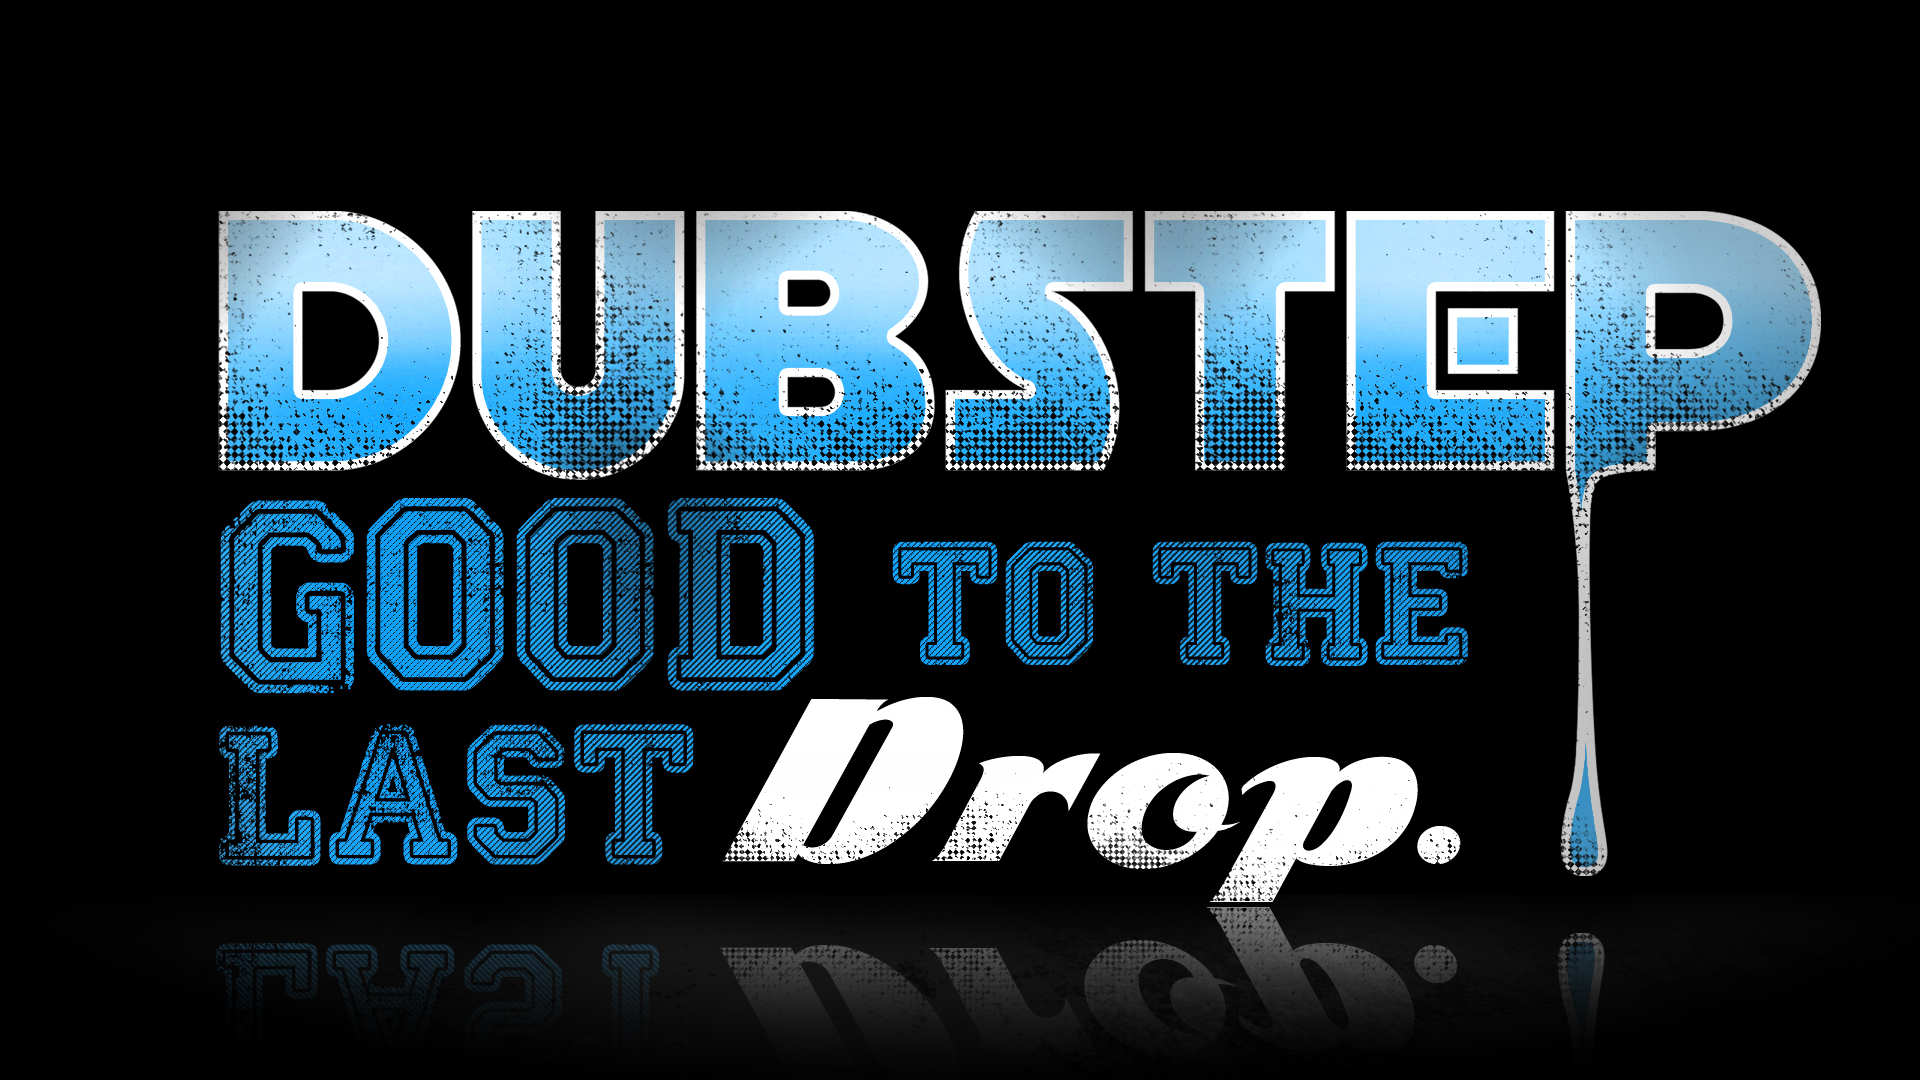 Dubstep background music wallpaper | DUBSTEP | Pinterest | To the